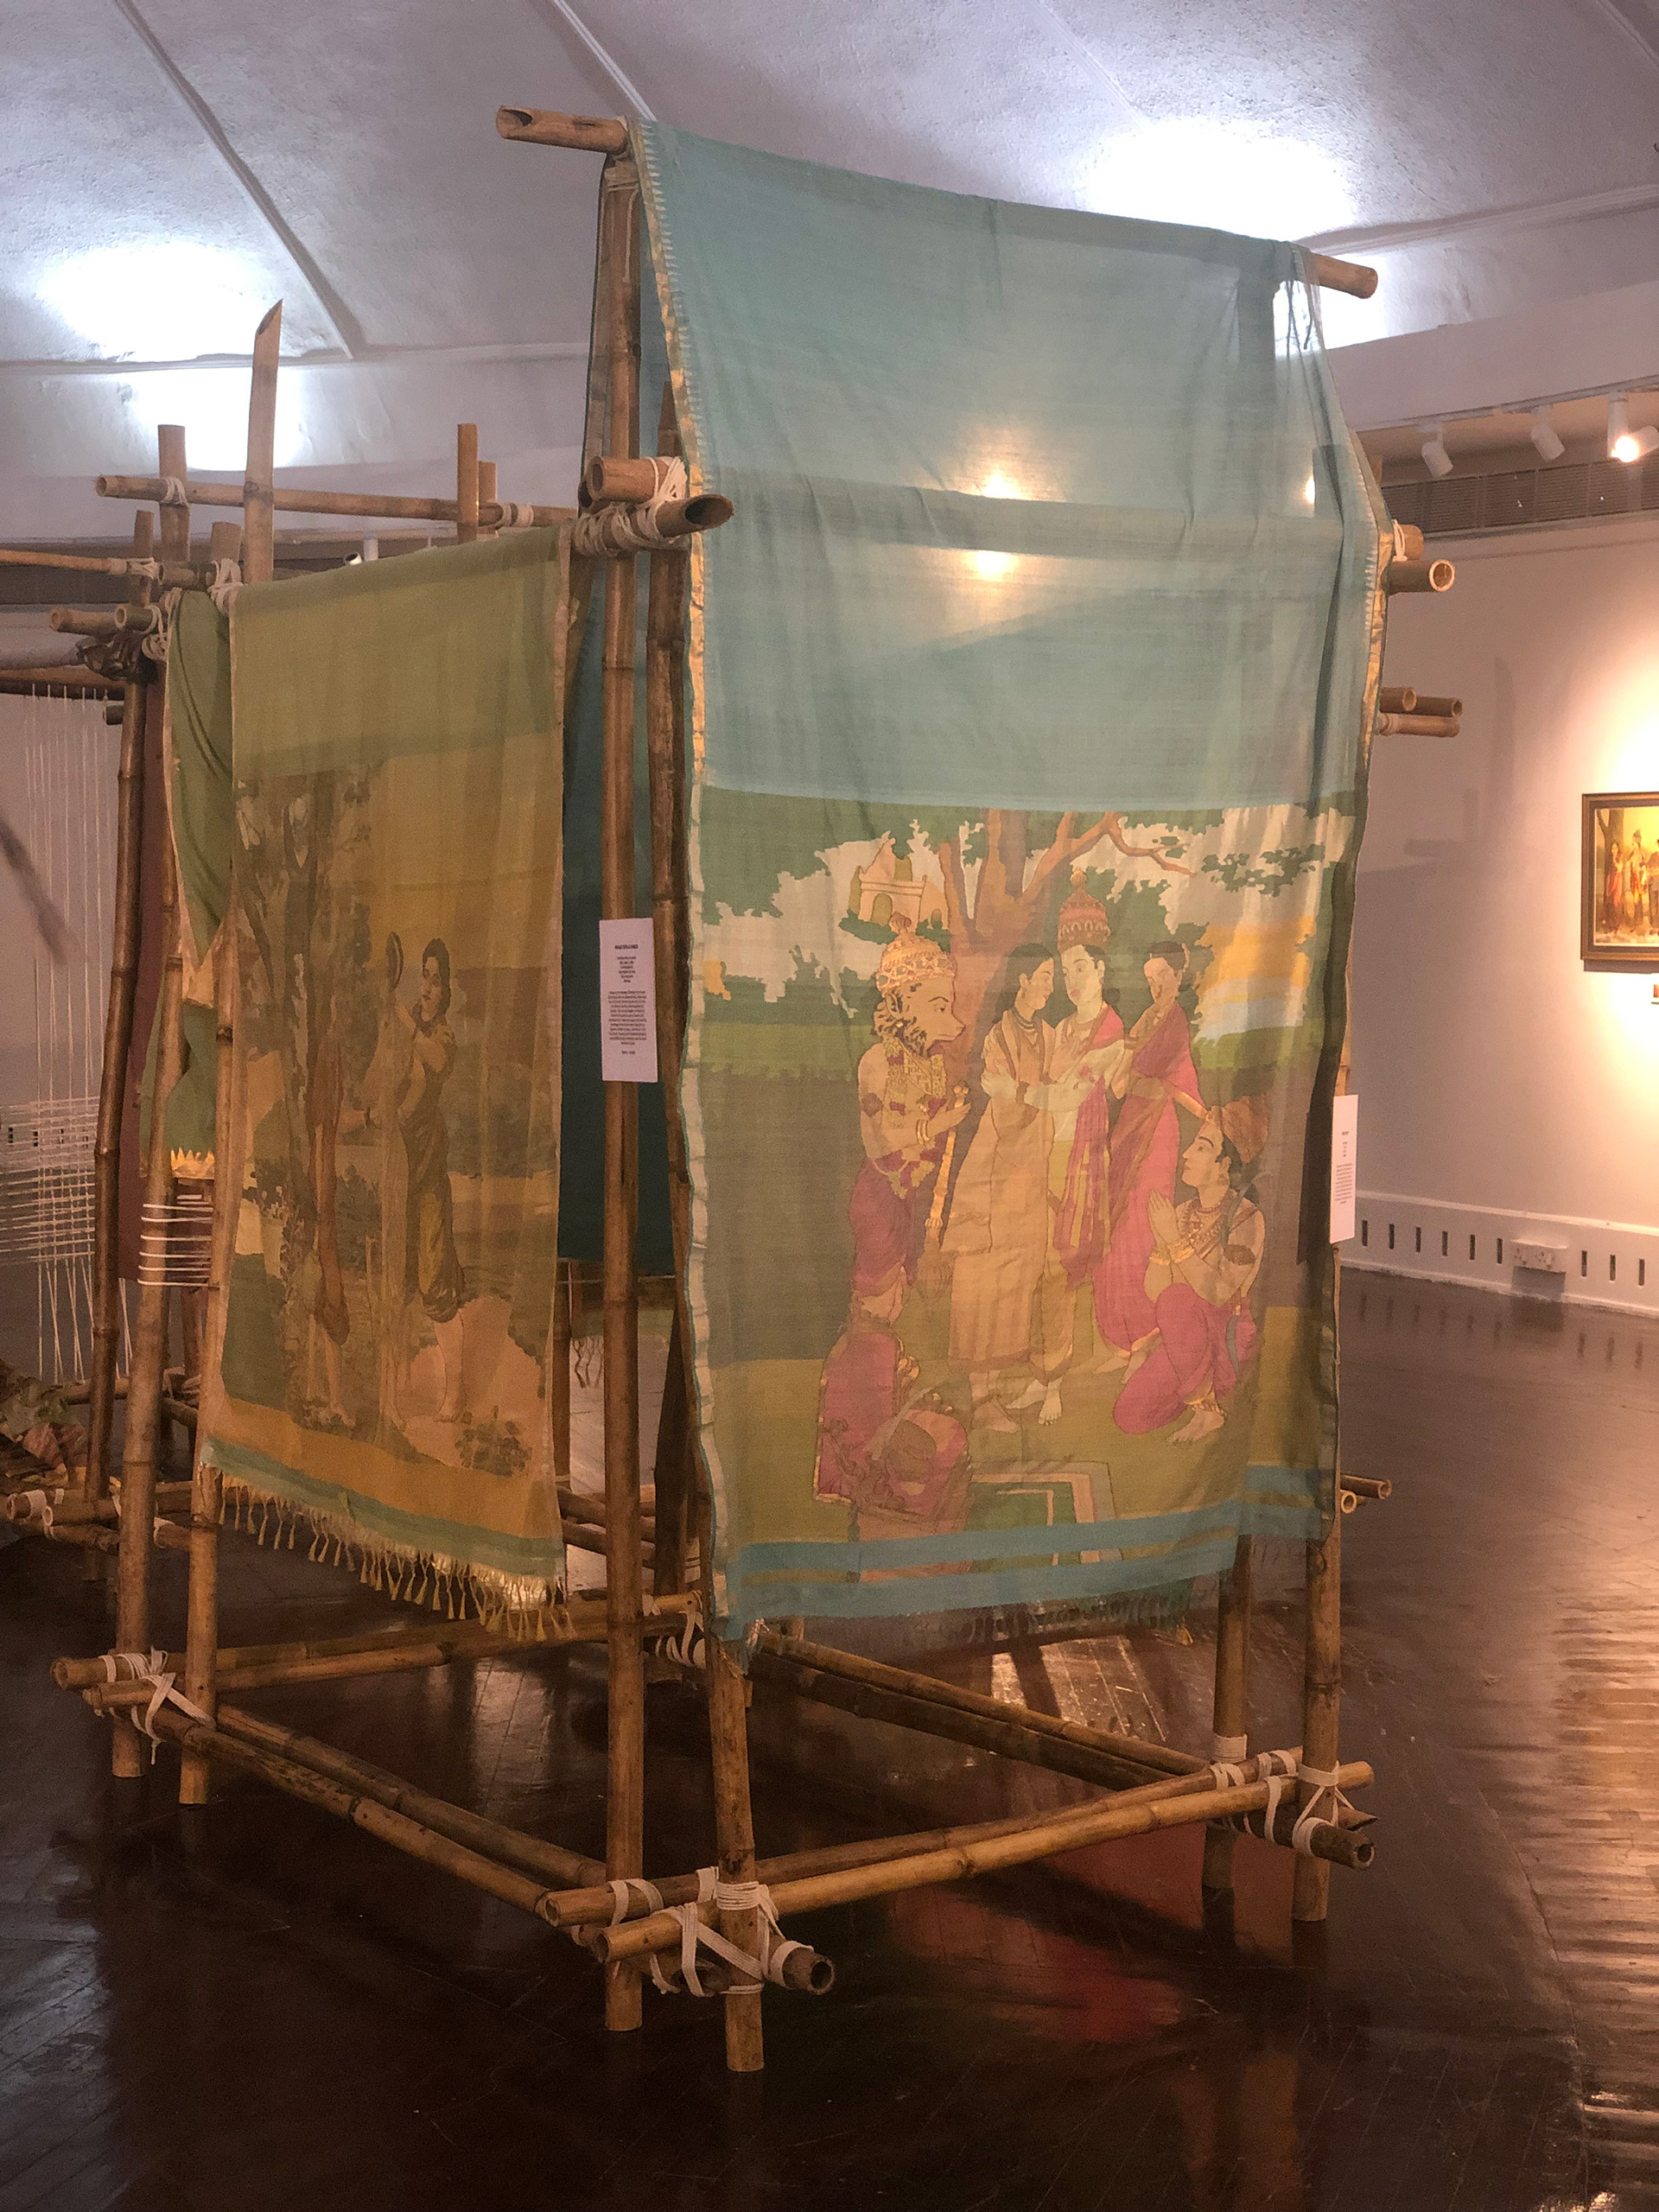 Gaurang Shah's installation of 30 landmark paintings from artist Raja Ravi Varma's works | Exhibition | Santati | Mahatma Gandhi | STIRworld